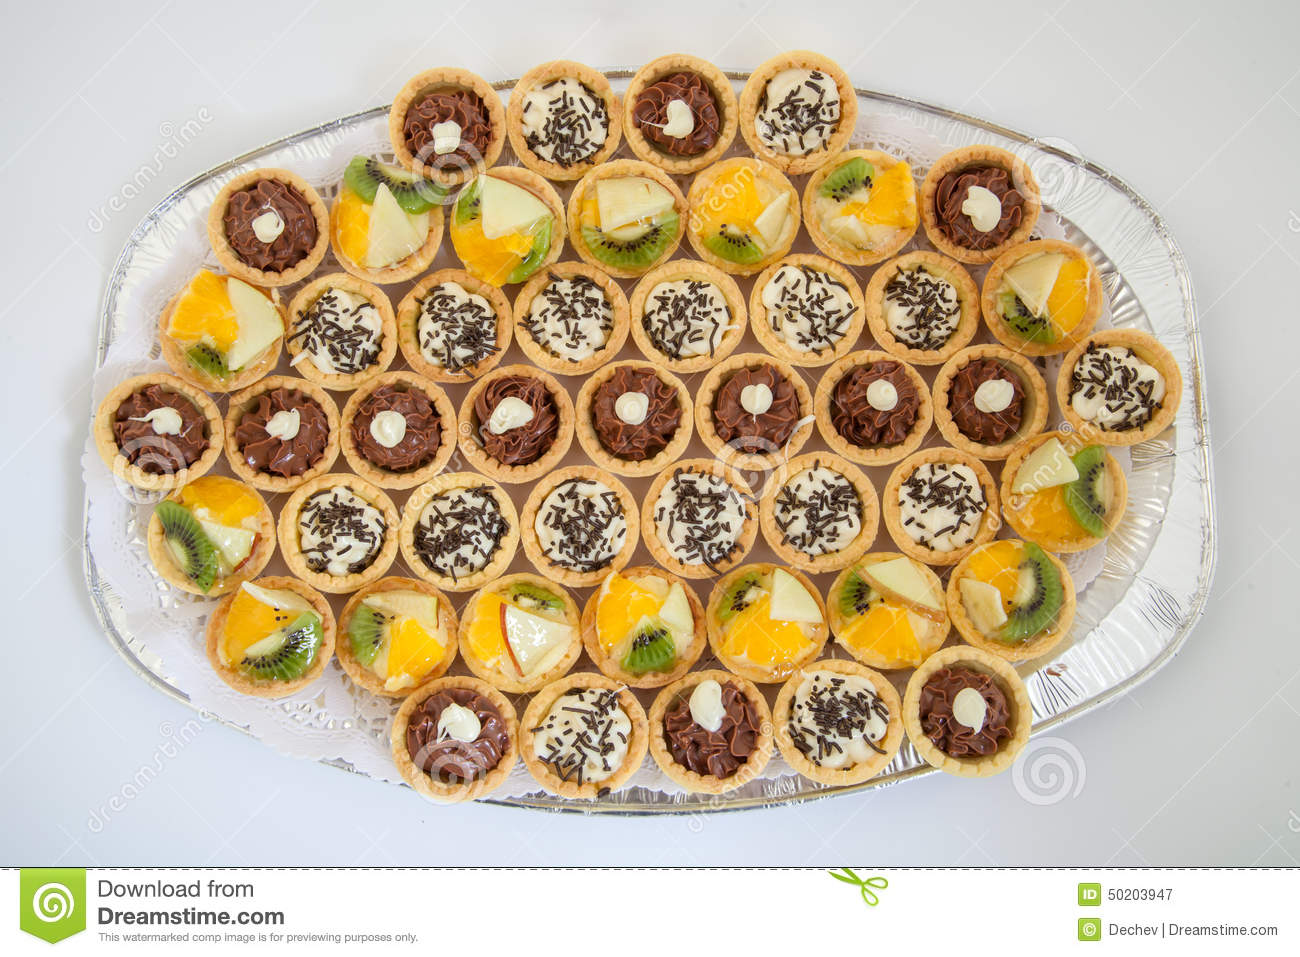 Party Platter With Small Cupcakes With Different Stuffing Food Catering Stock Image Image Of Multicolored Cupcake 50203947